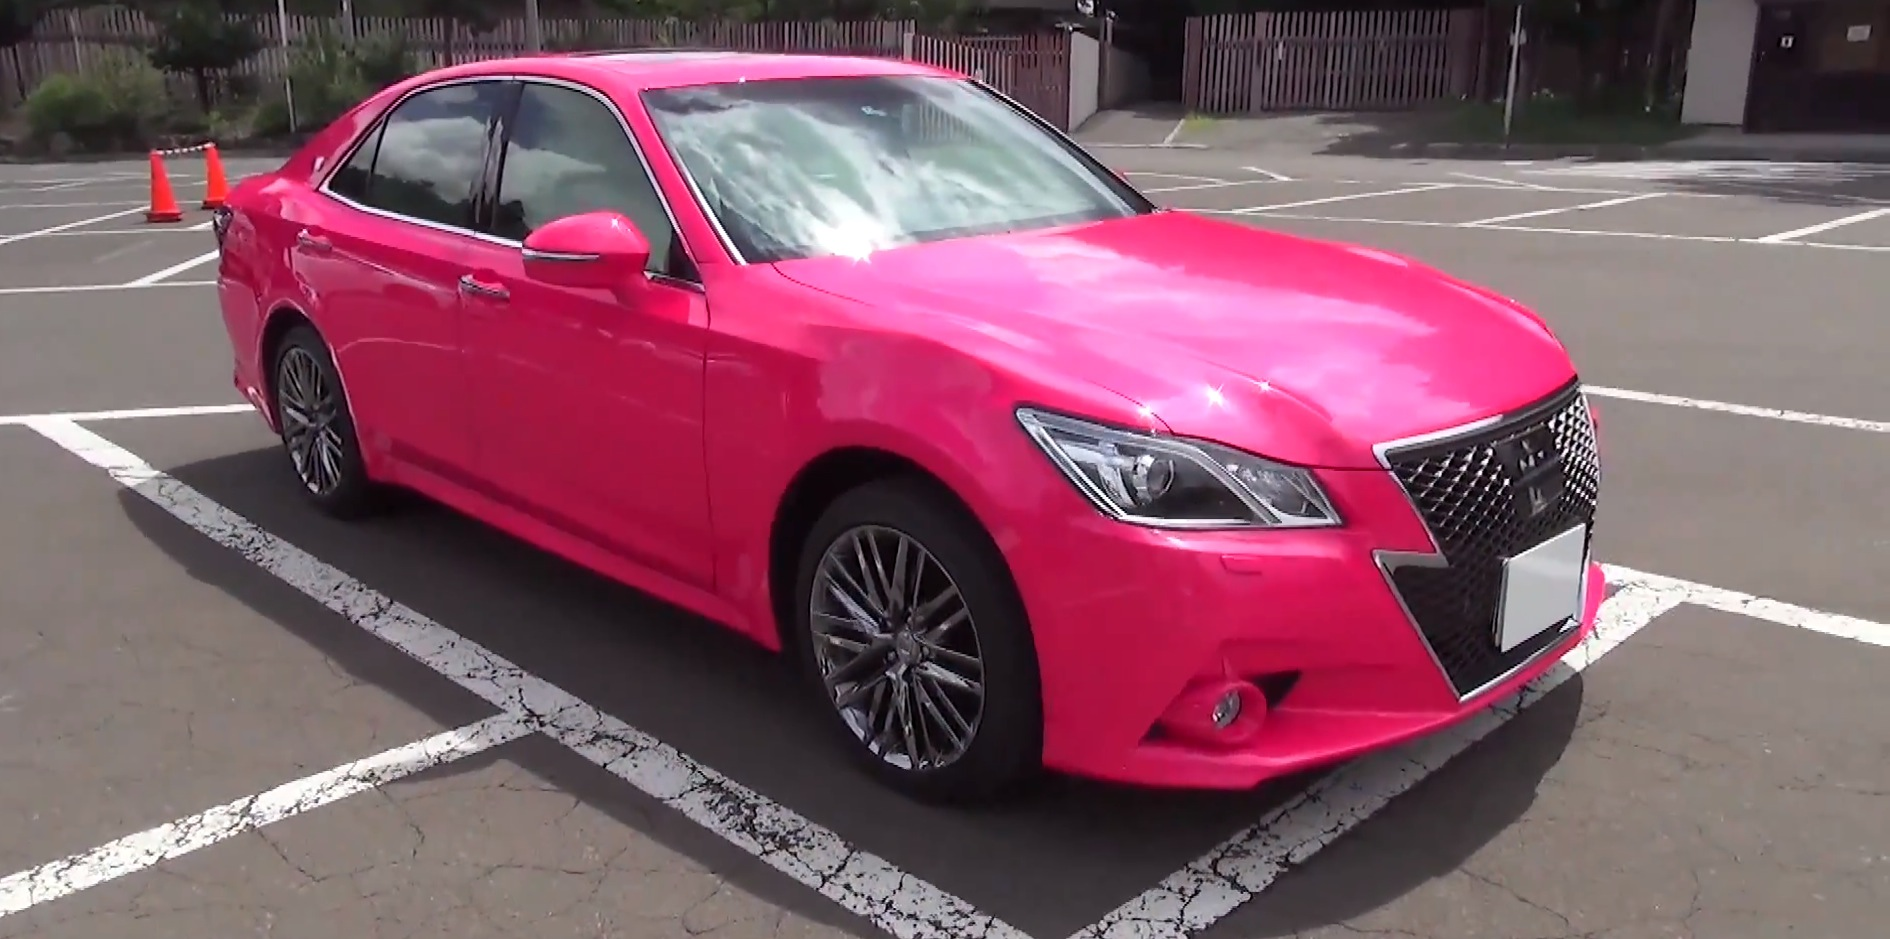 2014 Toyota Crown Athlete Is A Pink Forbidden Fruit